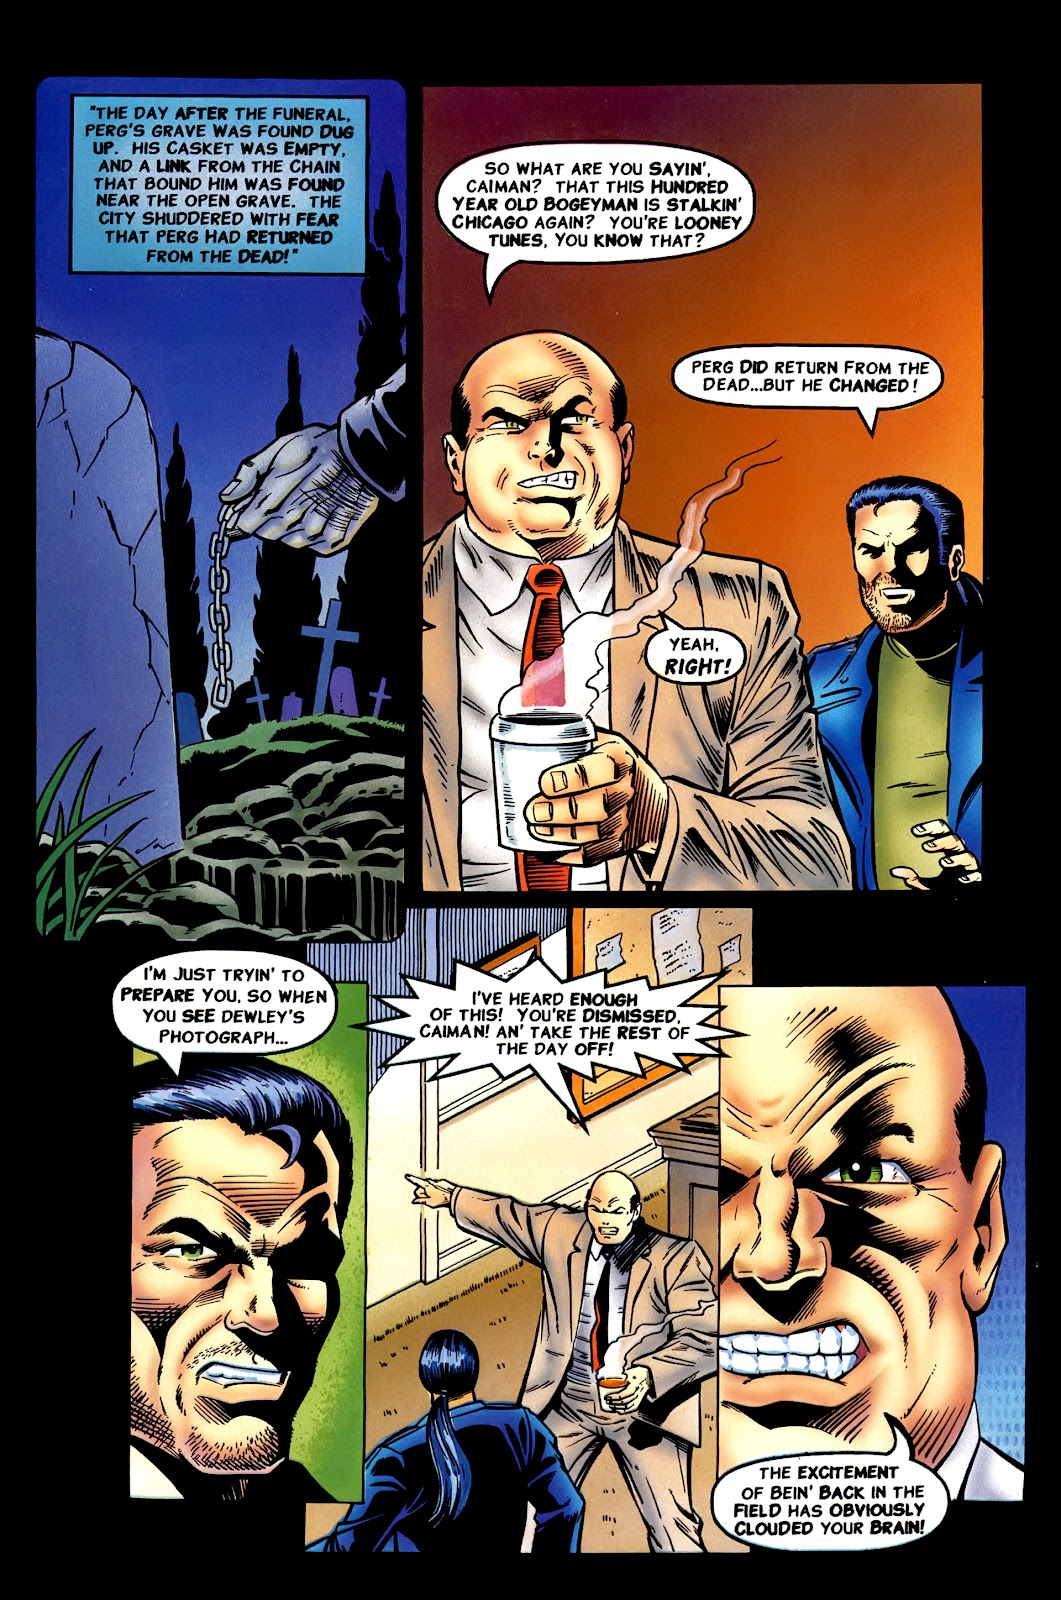 Read online Perg comic -  Issue #8 - 22